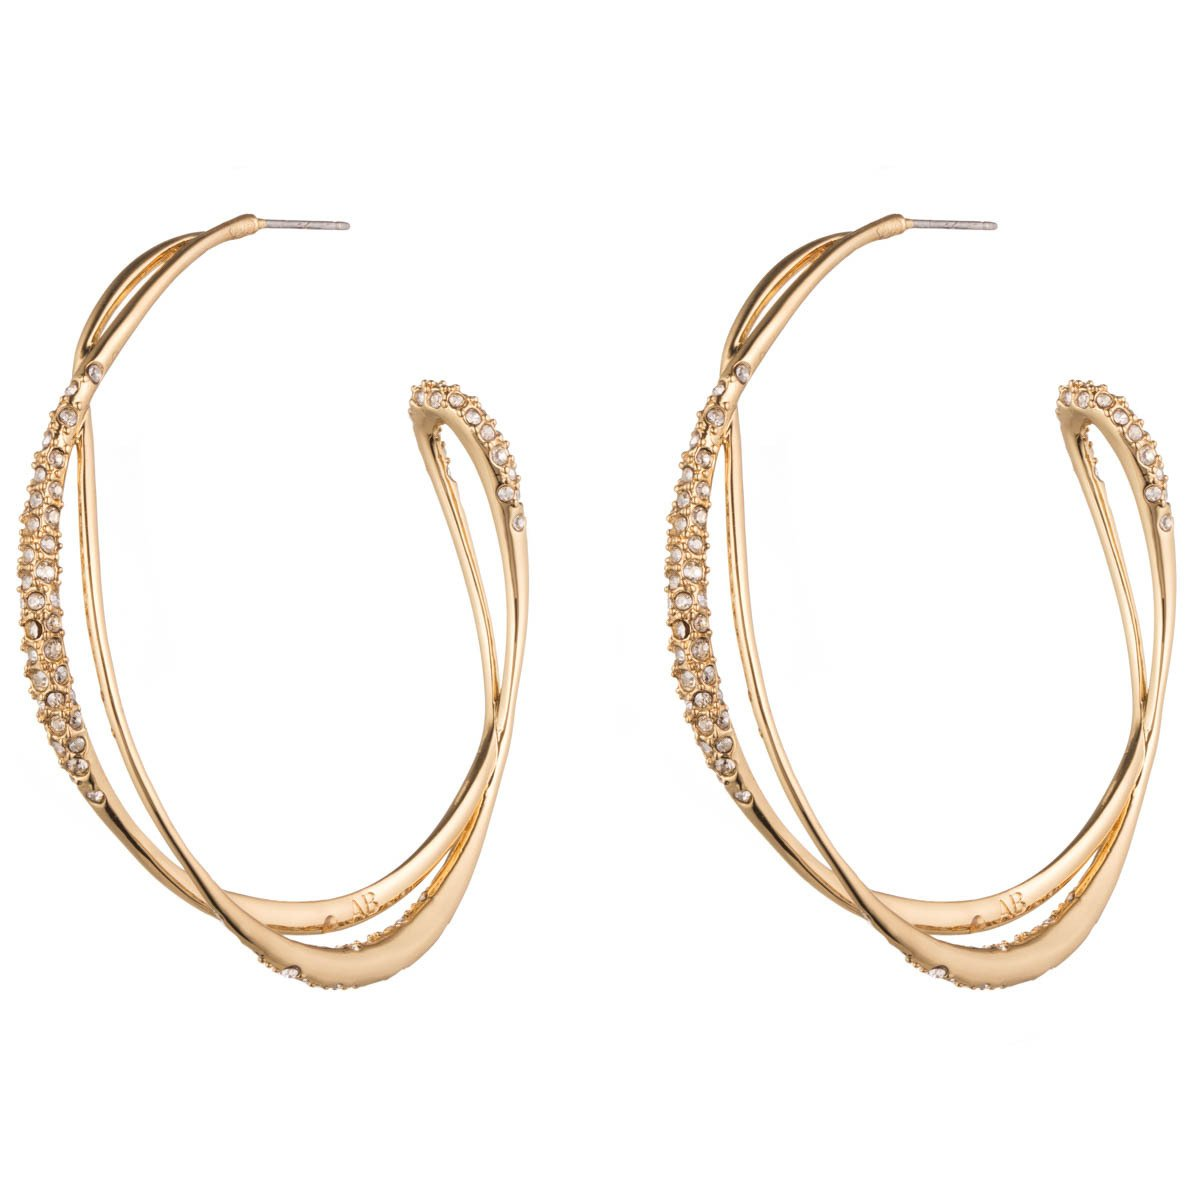 Encrusted Orbiting Hoop Earring